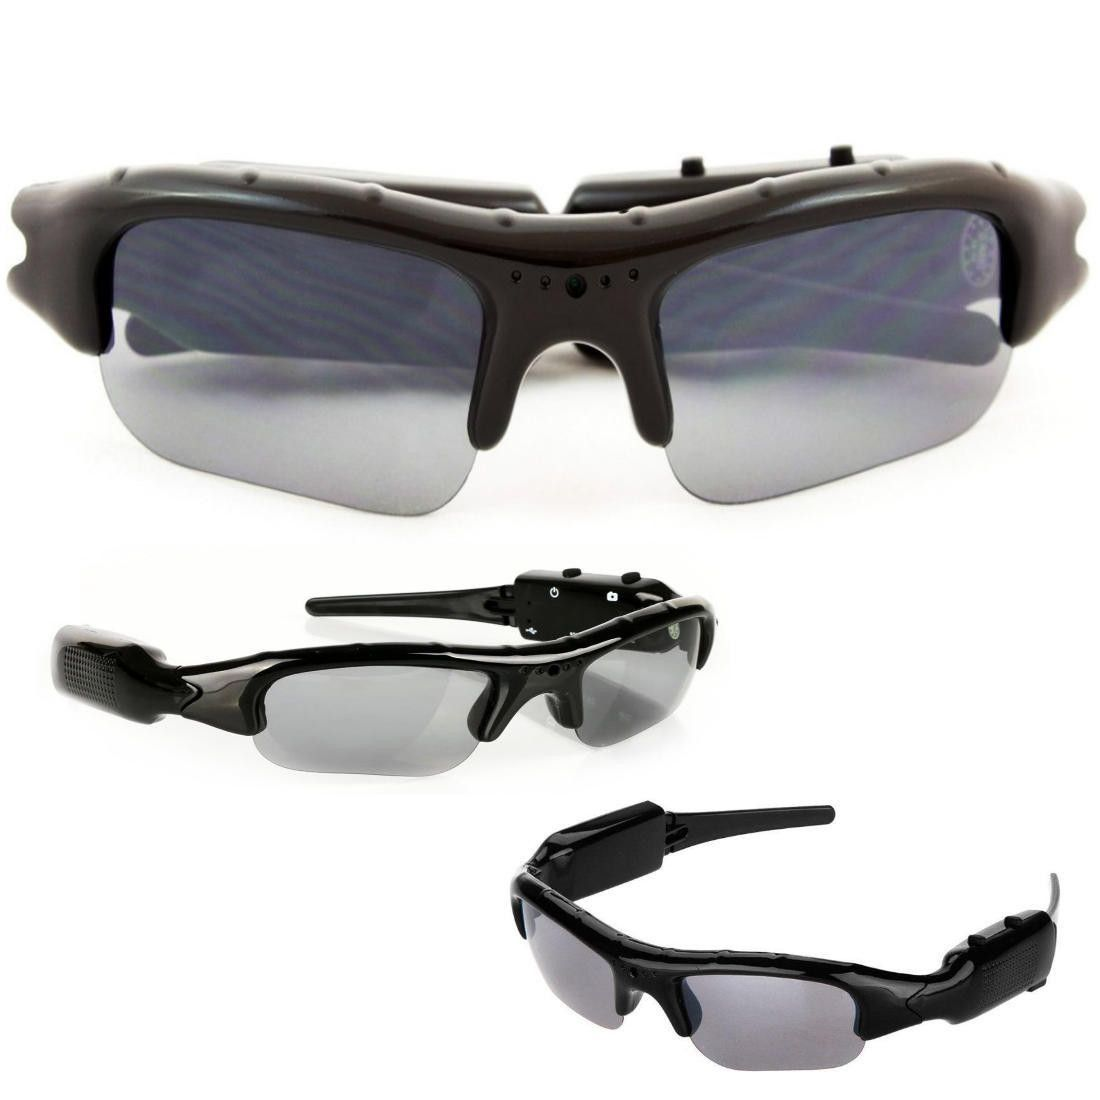 The Best Spy Camera Glasses On Planet Never Miss Another Chance How To Build Ear Record Your Lifes Special Moments Simple Off Switch Activation